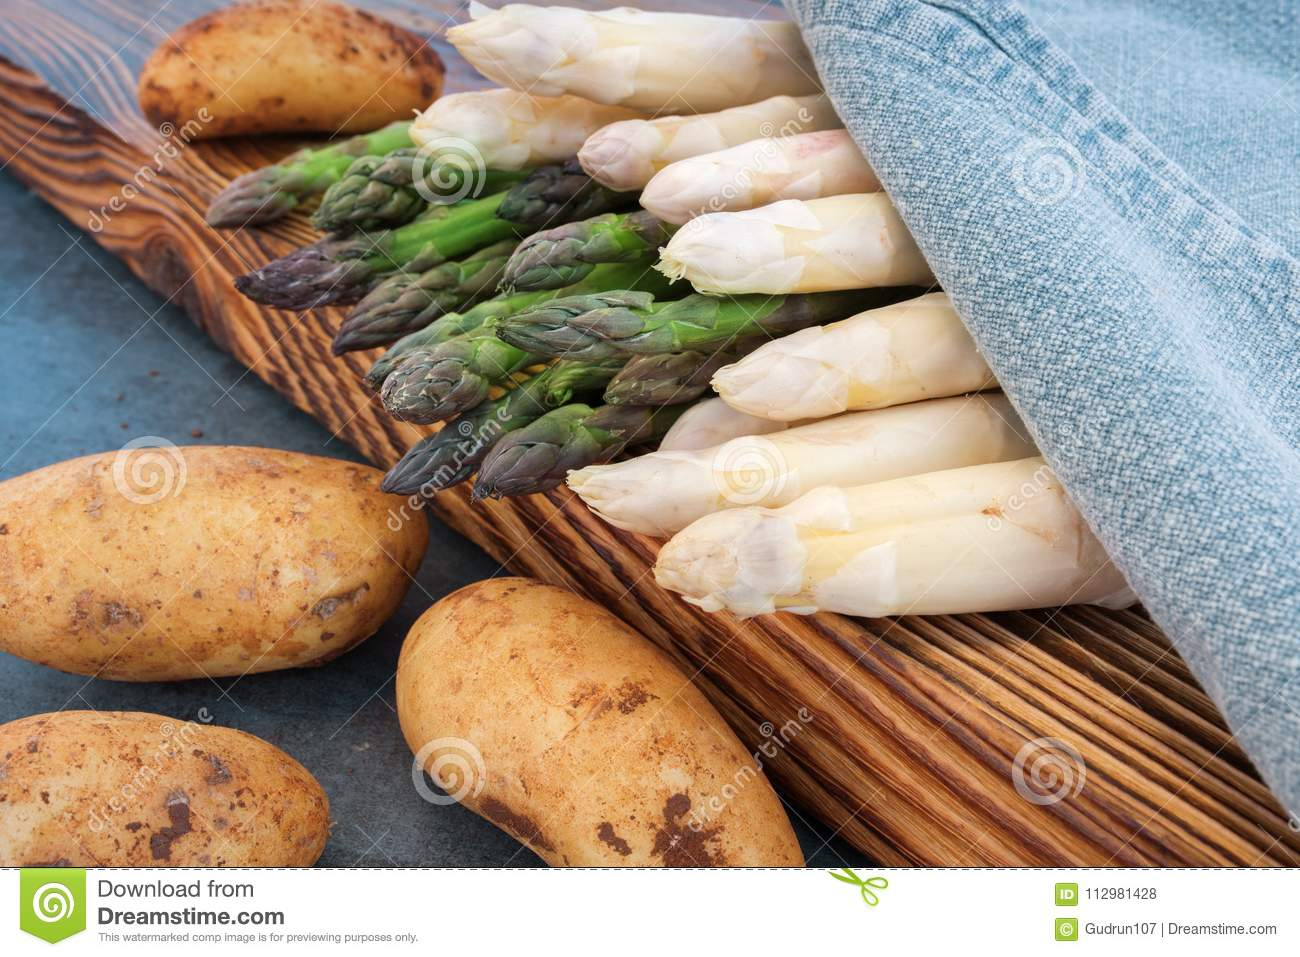 Varieties of asparagus with potatoes